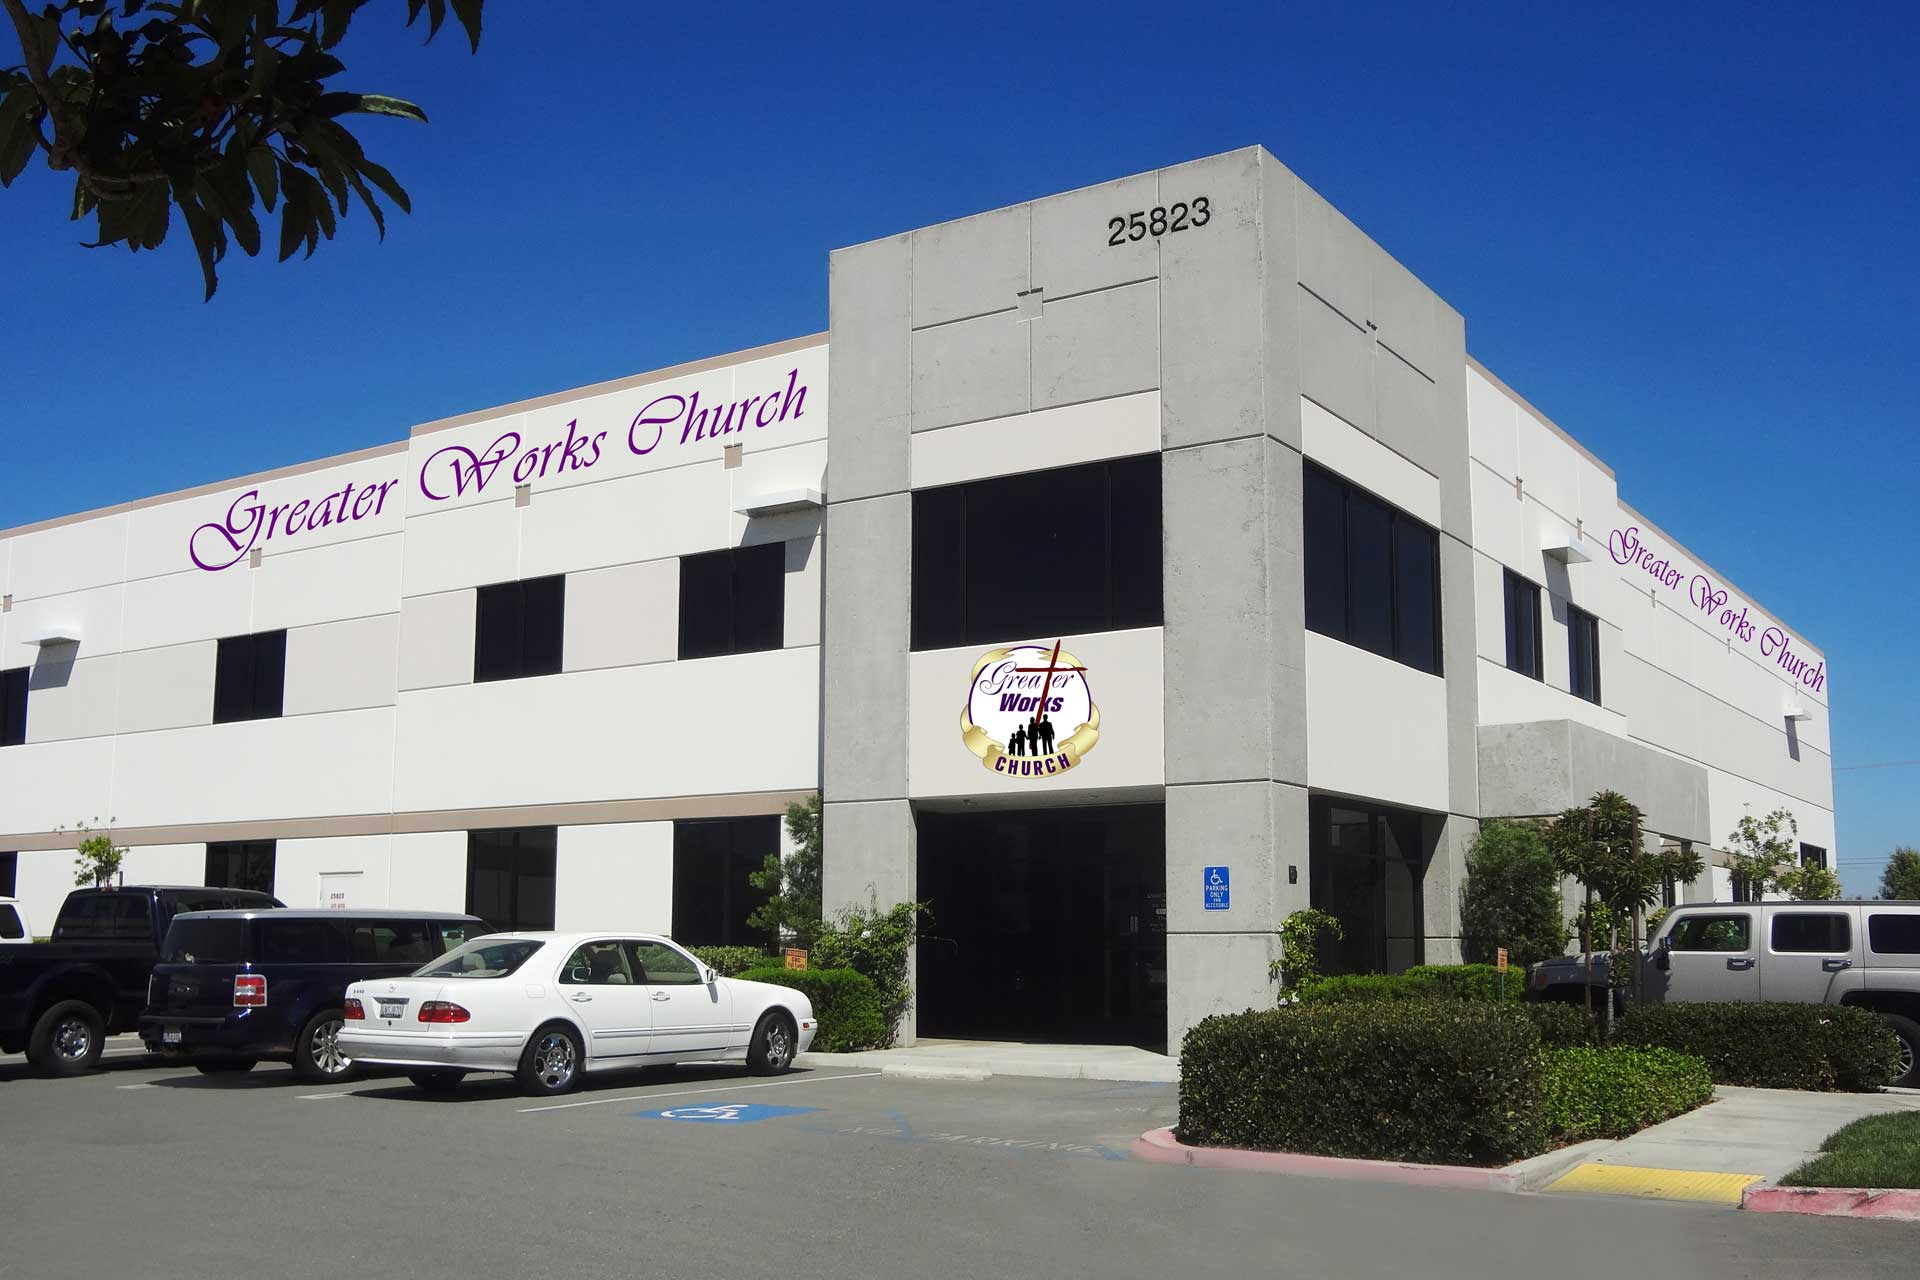 Greater Works Church Building